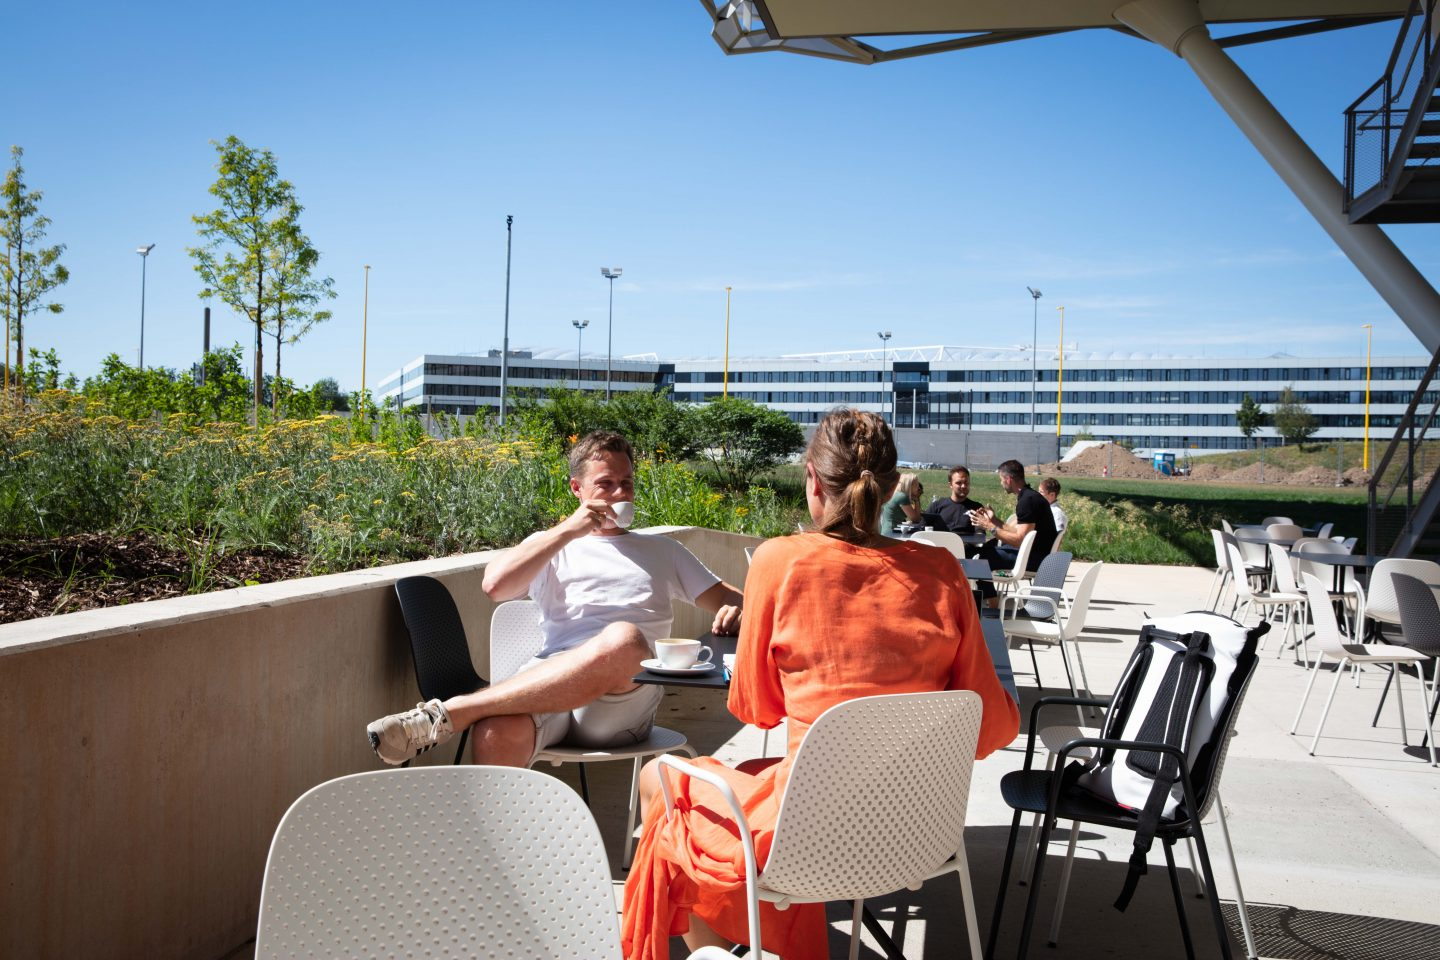 Two adidas employeeshaving having a coffee break on the terrace of the adidas Halftime building at the World of Sports in Herzogenaurach